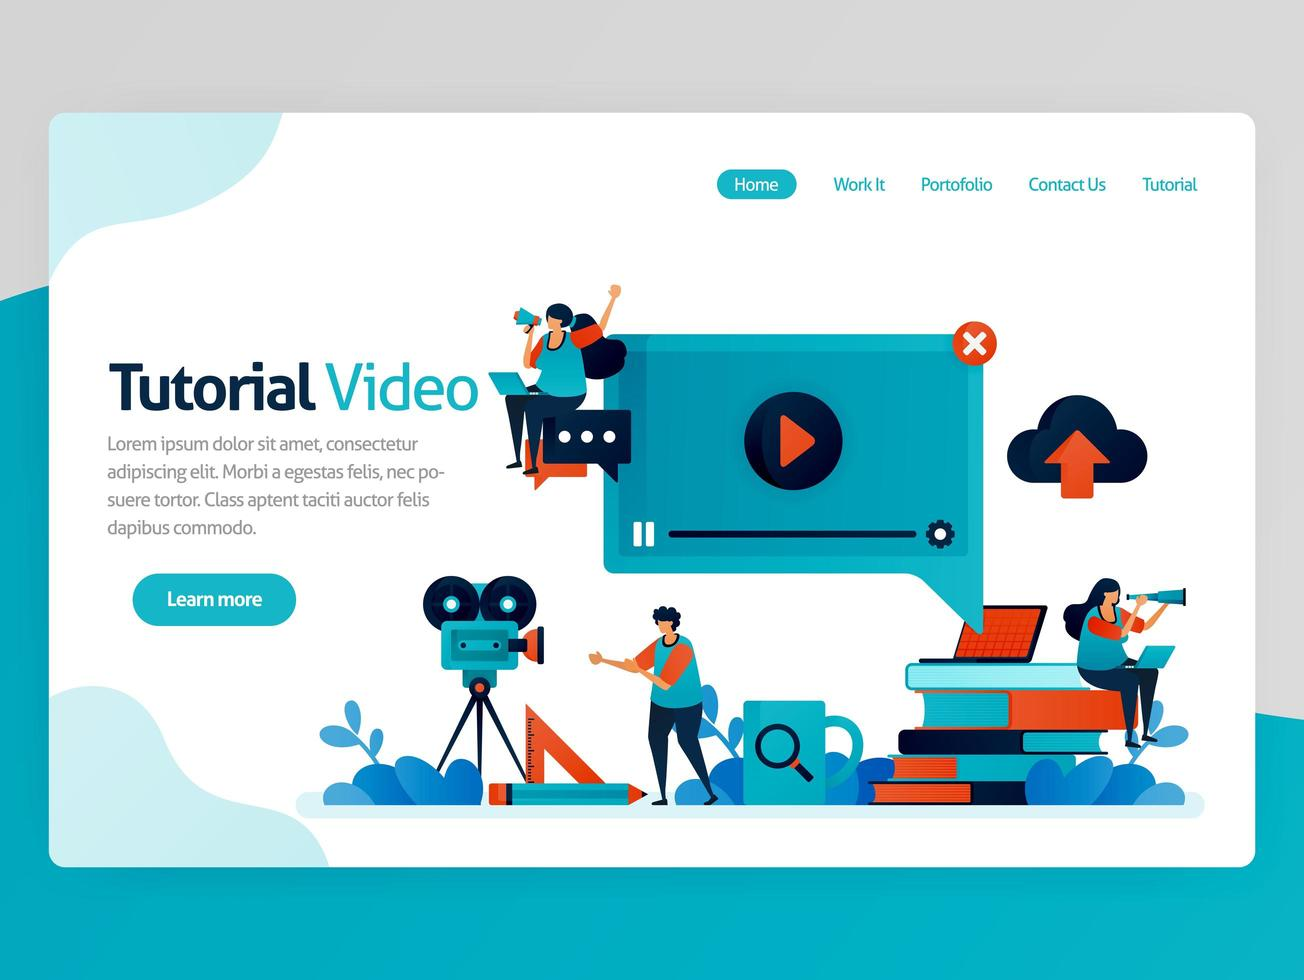 Vector illustration for video tutorial landing page. Learning platform, broadcast production for education. Modern learning. Tutoring chat and webinar lessons. Homepage header web page template apps